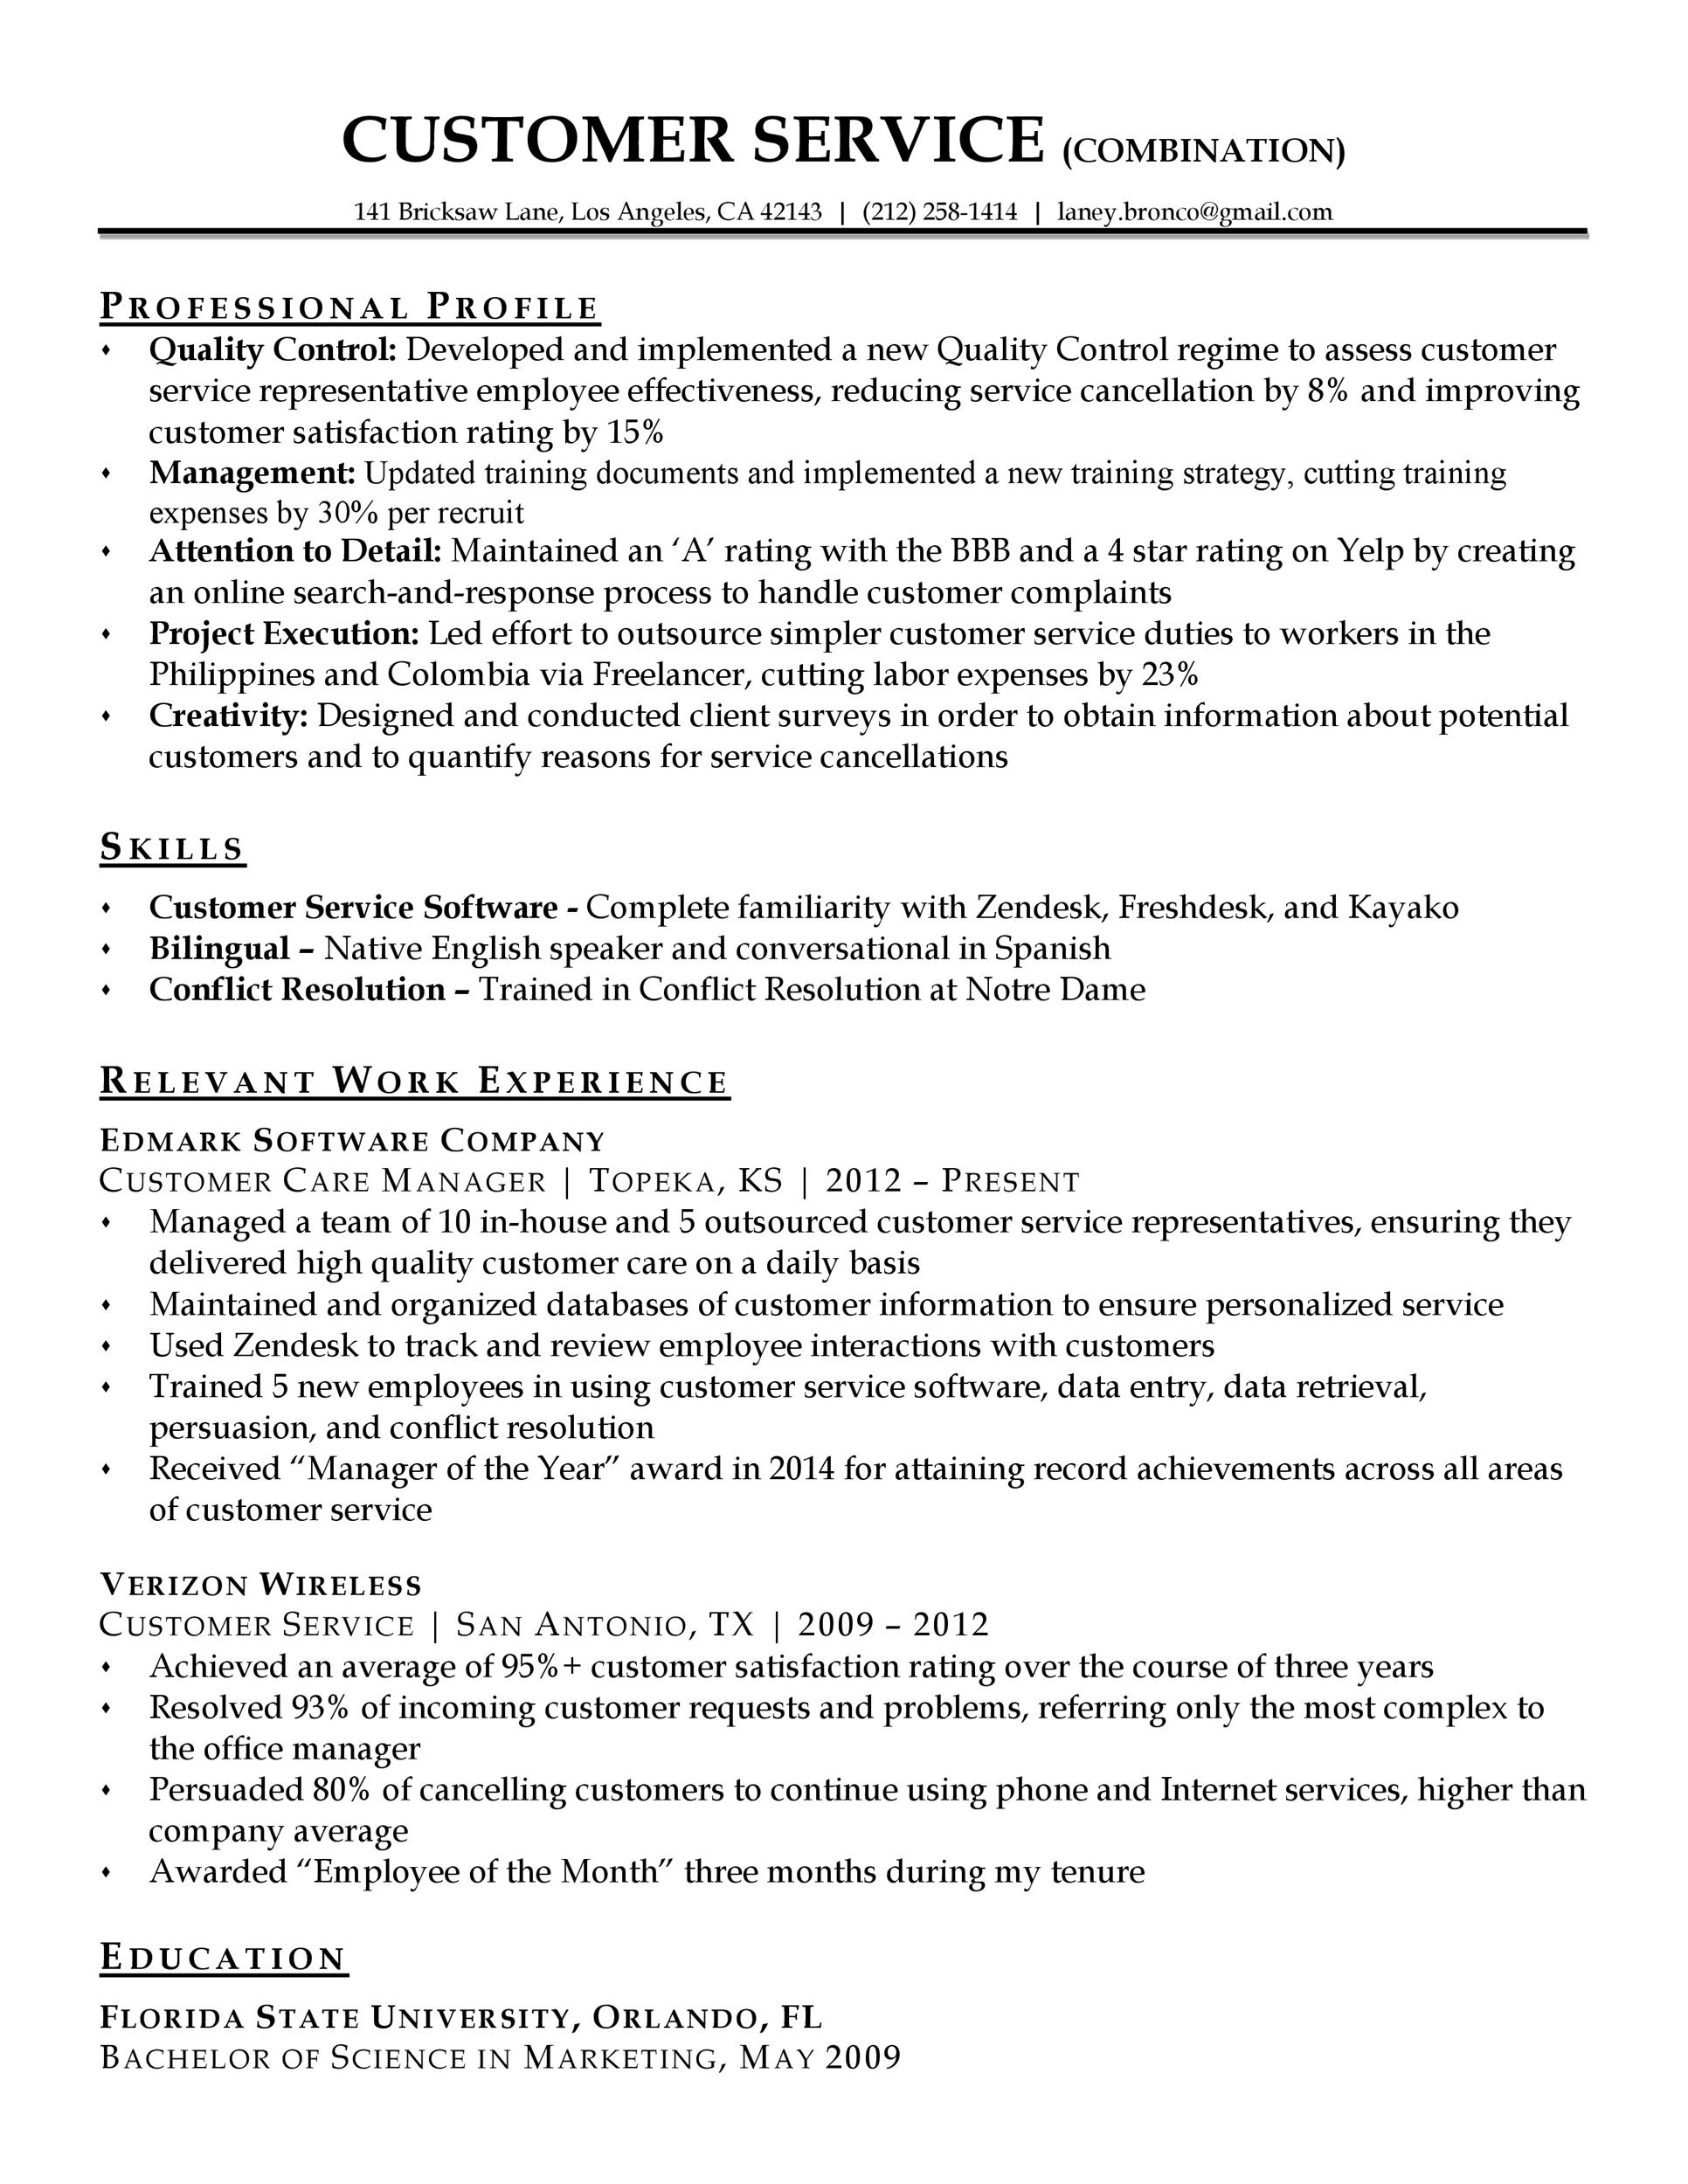 30 Customer Service Resume Examples ᐅ Template Lab